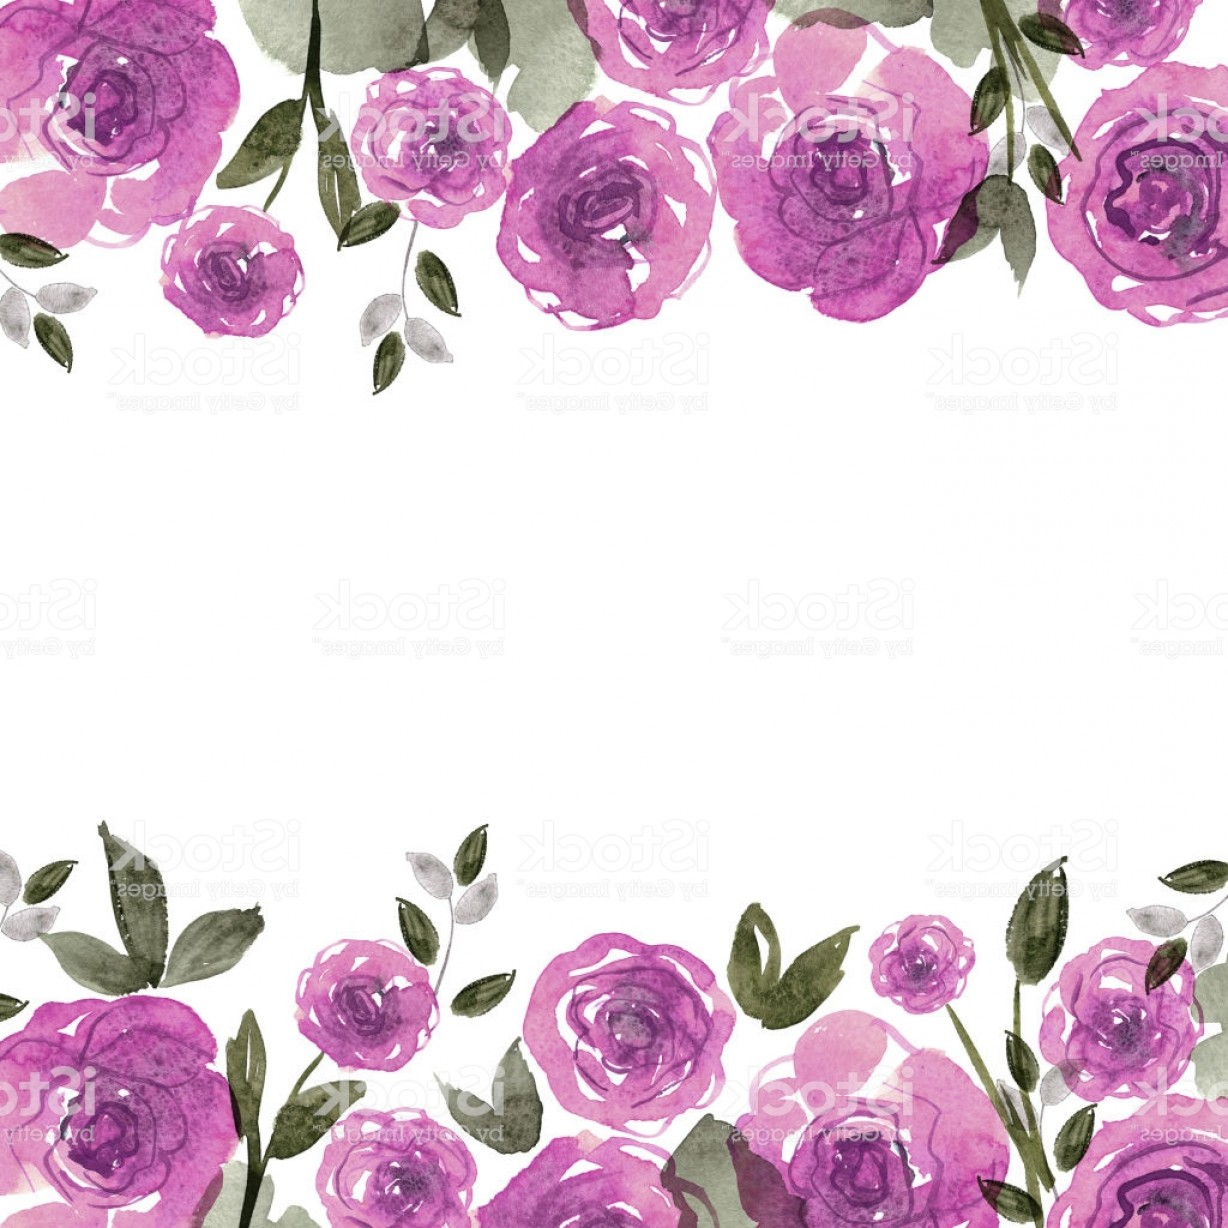 Watercolor Floral Background Vector: Cute Watercolor Flower Frame Background With Purple Roses Gm